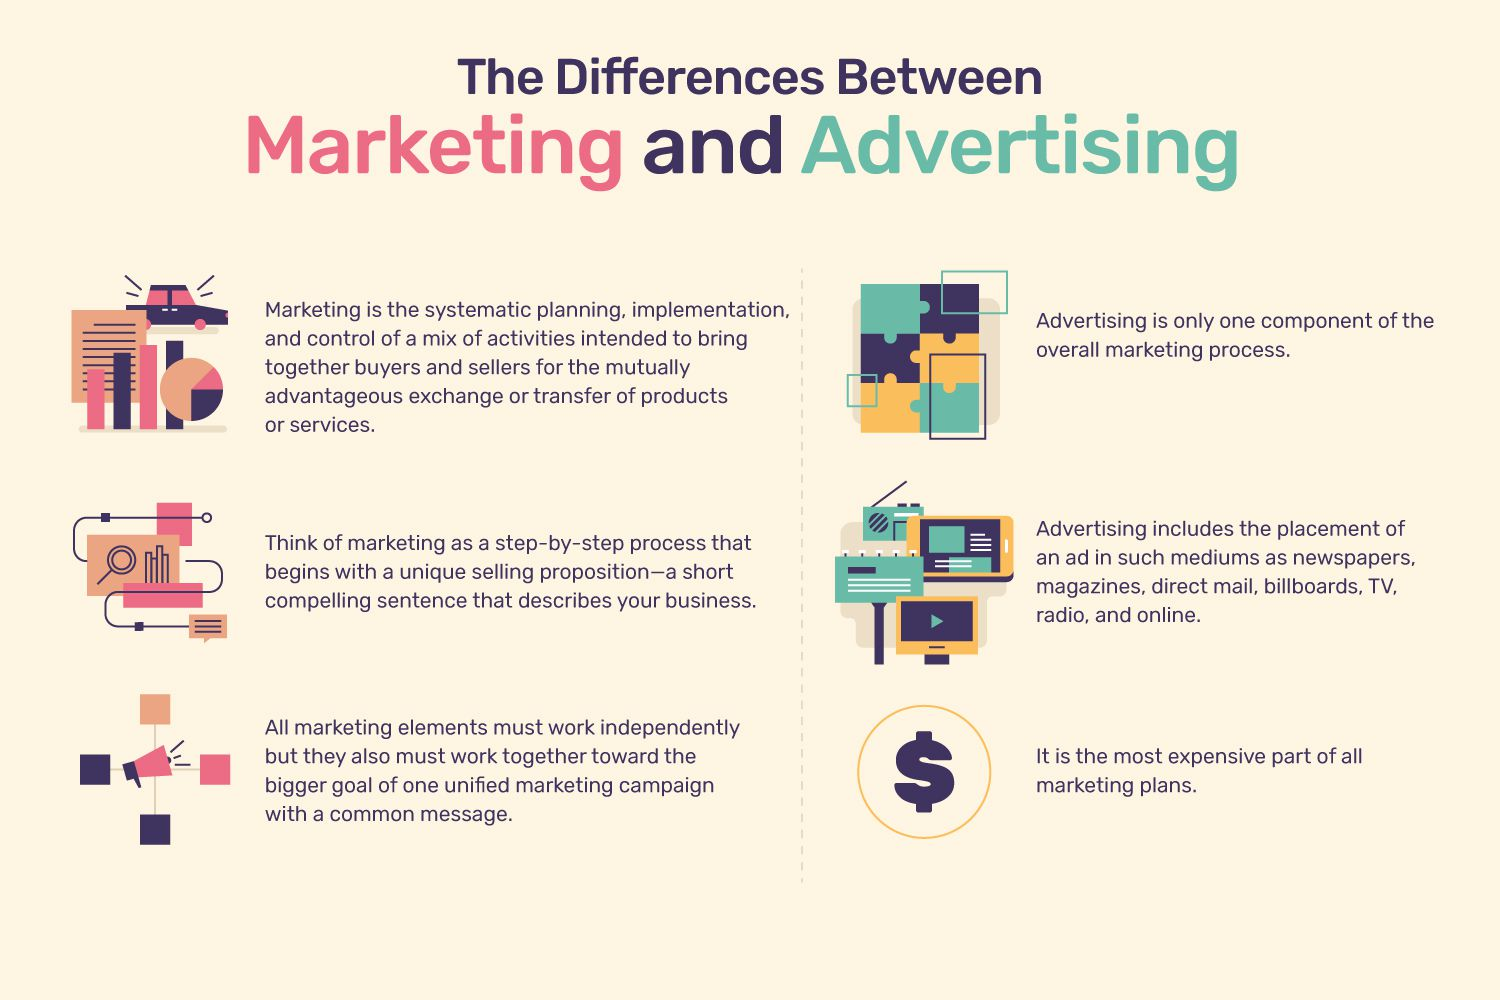 differentiating marketing from advertising